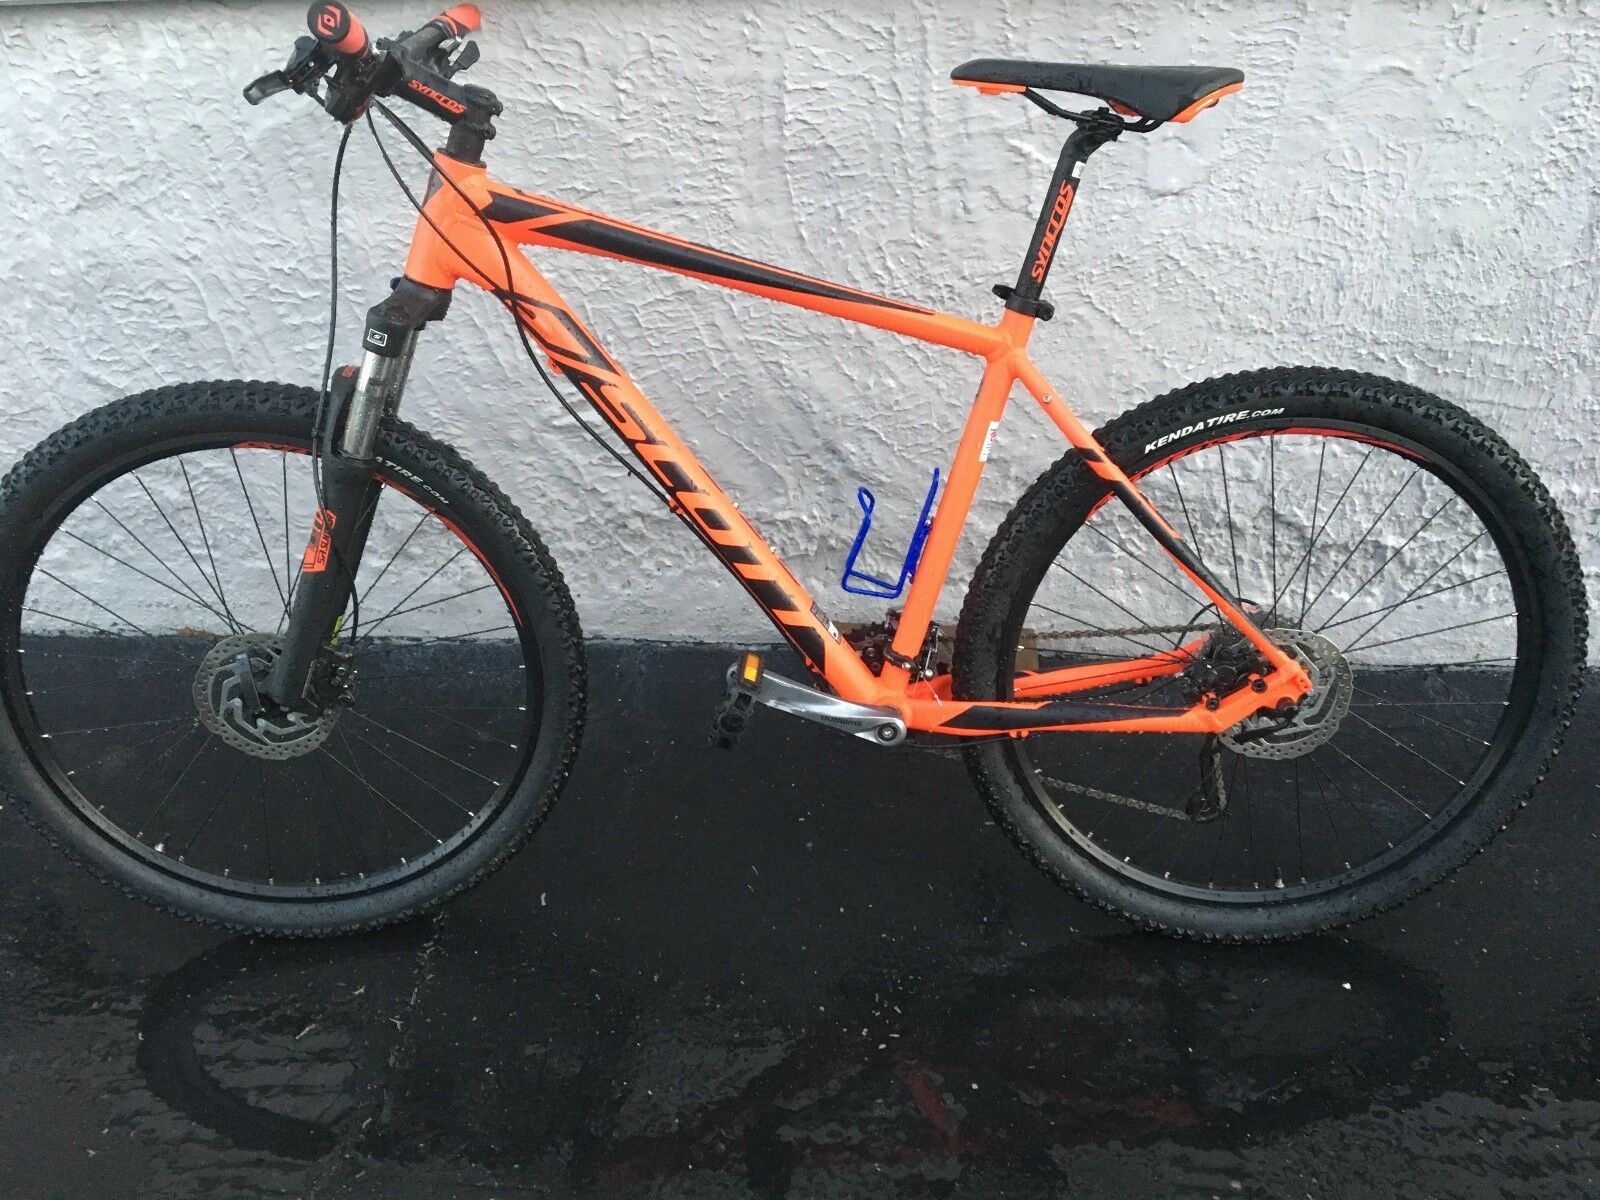 MOUNTAIN BIKE- Scott Aspect 740  size large  bought  new on September 22,2017.